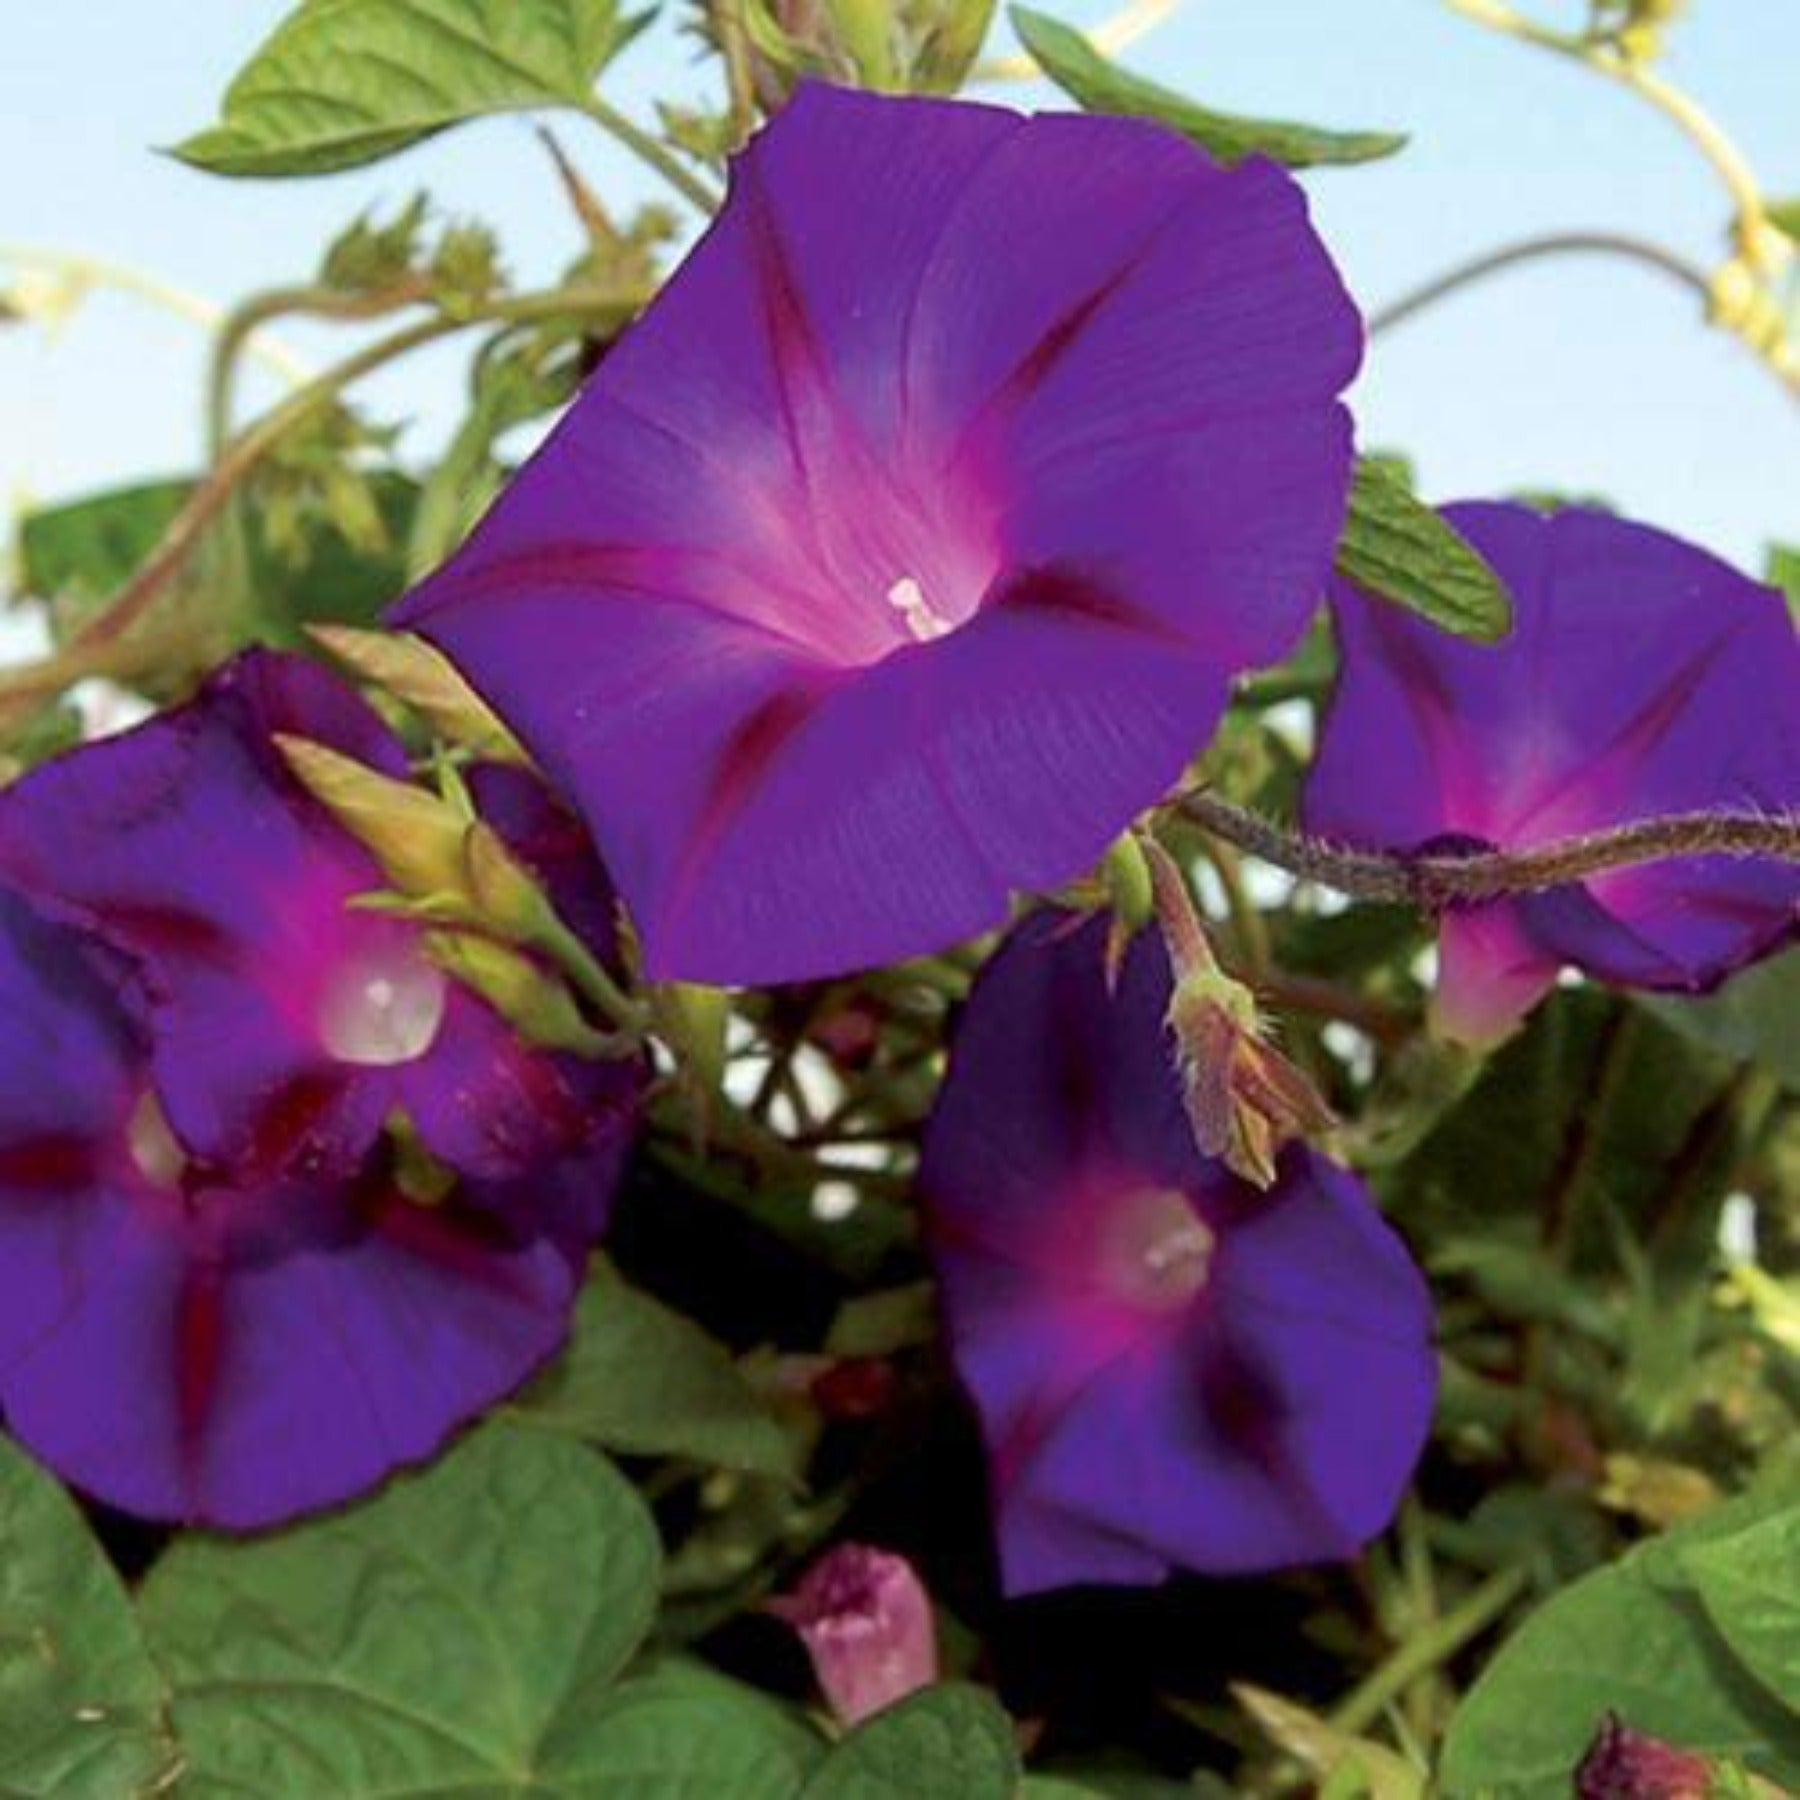 Grandpa Ott Morning Glory Vining Flower